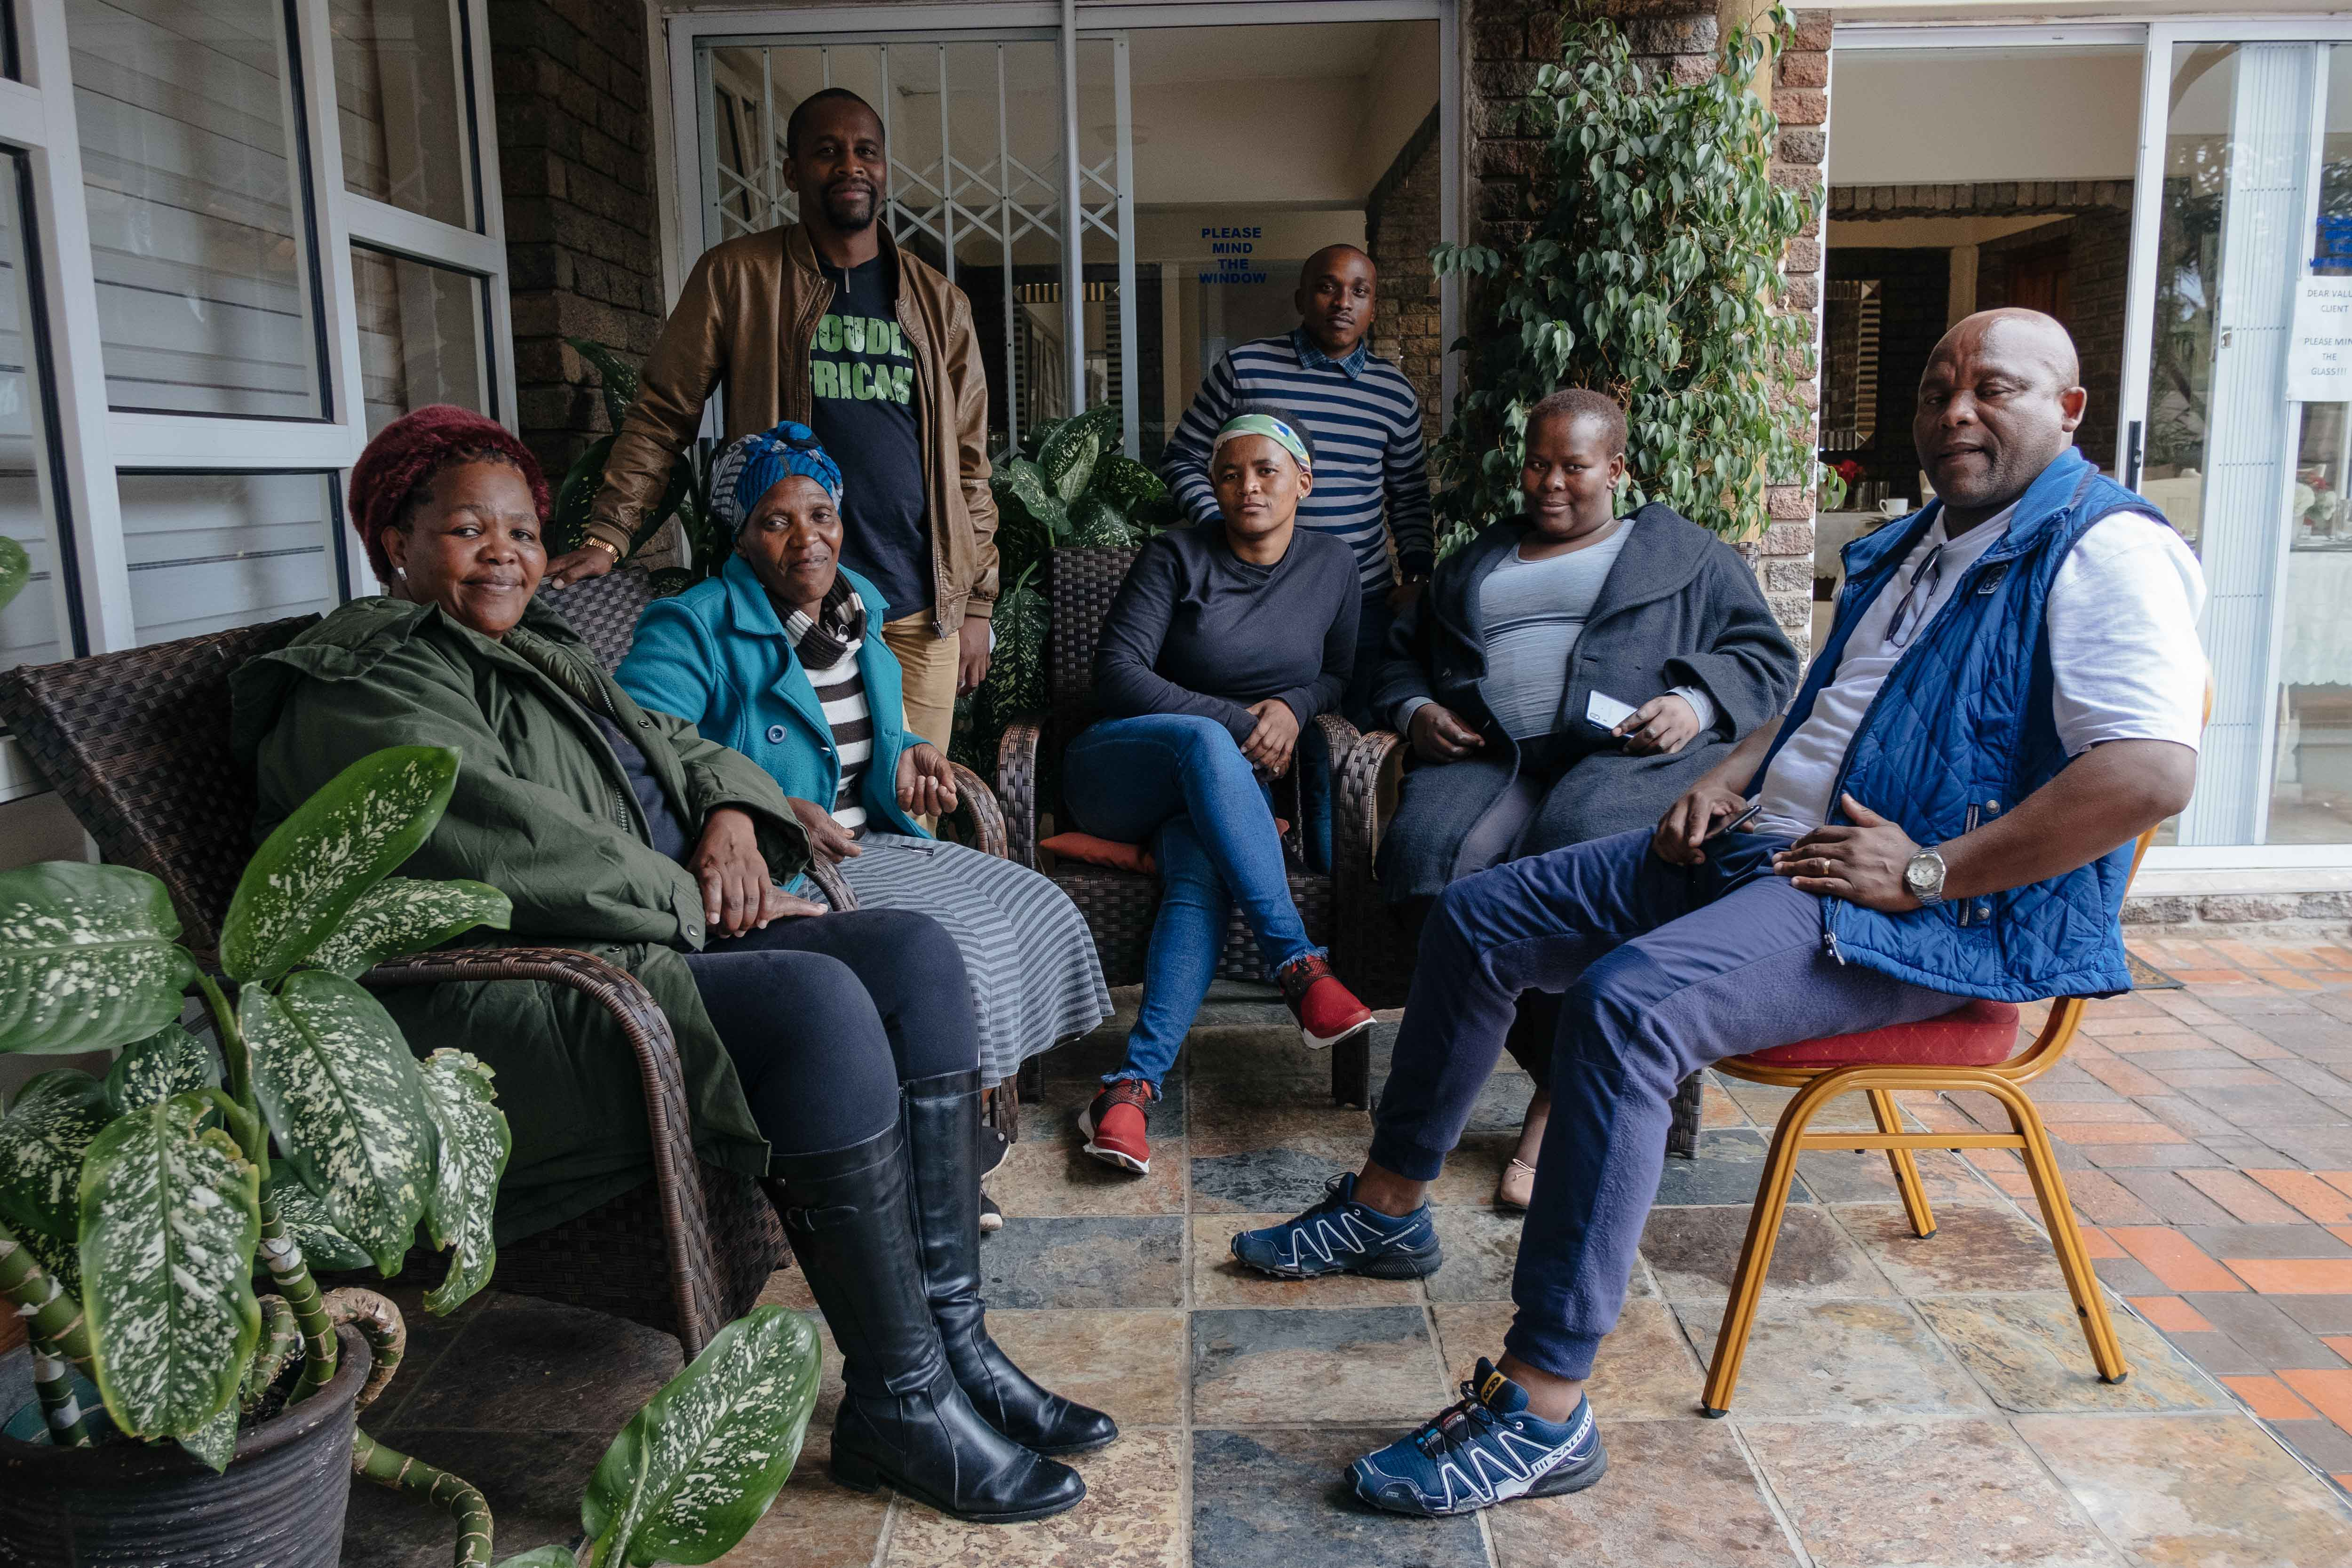 11 November 2019: Community leaders at the water crisis workshop, from left, Nokuzola Bulana, Cynthia JamJam, Mthandazo Ndlovu, Nonkozo Hlaziya, Siphelele Mcetywa, Govana Yanga and Xolani Ngxatu.